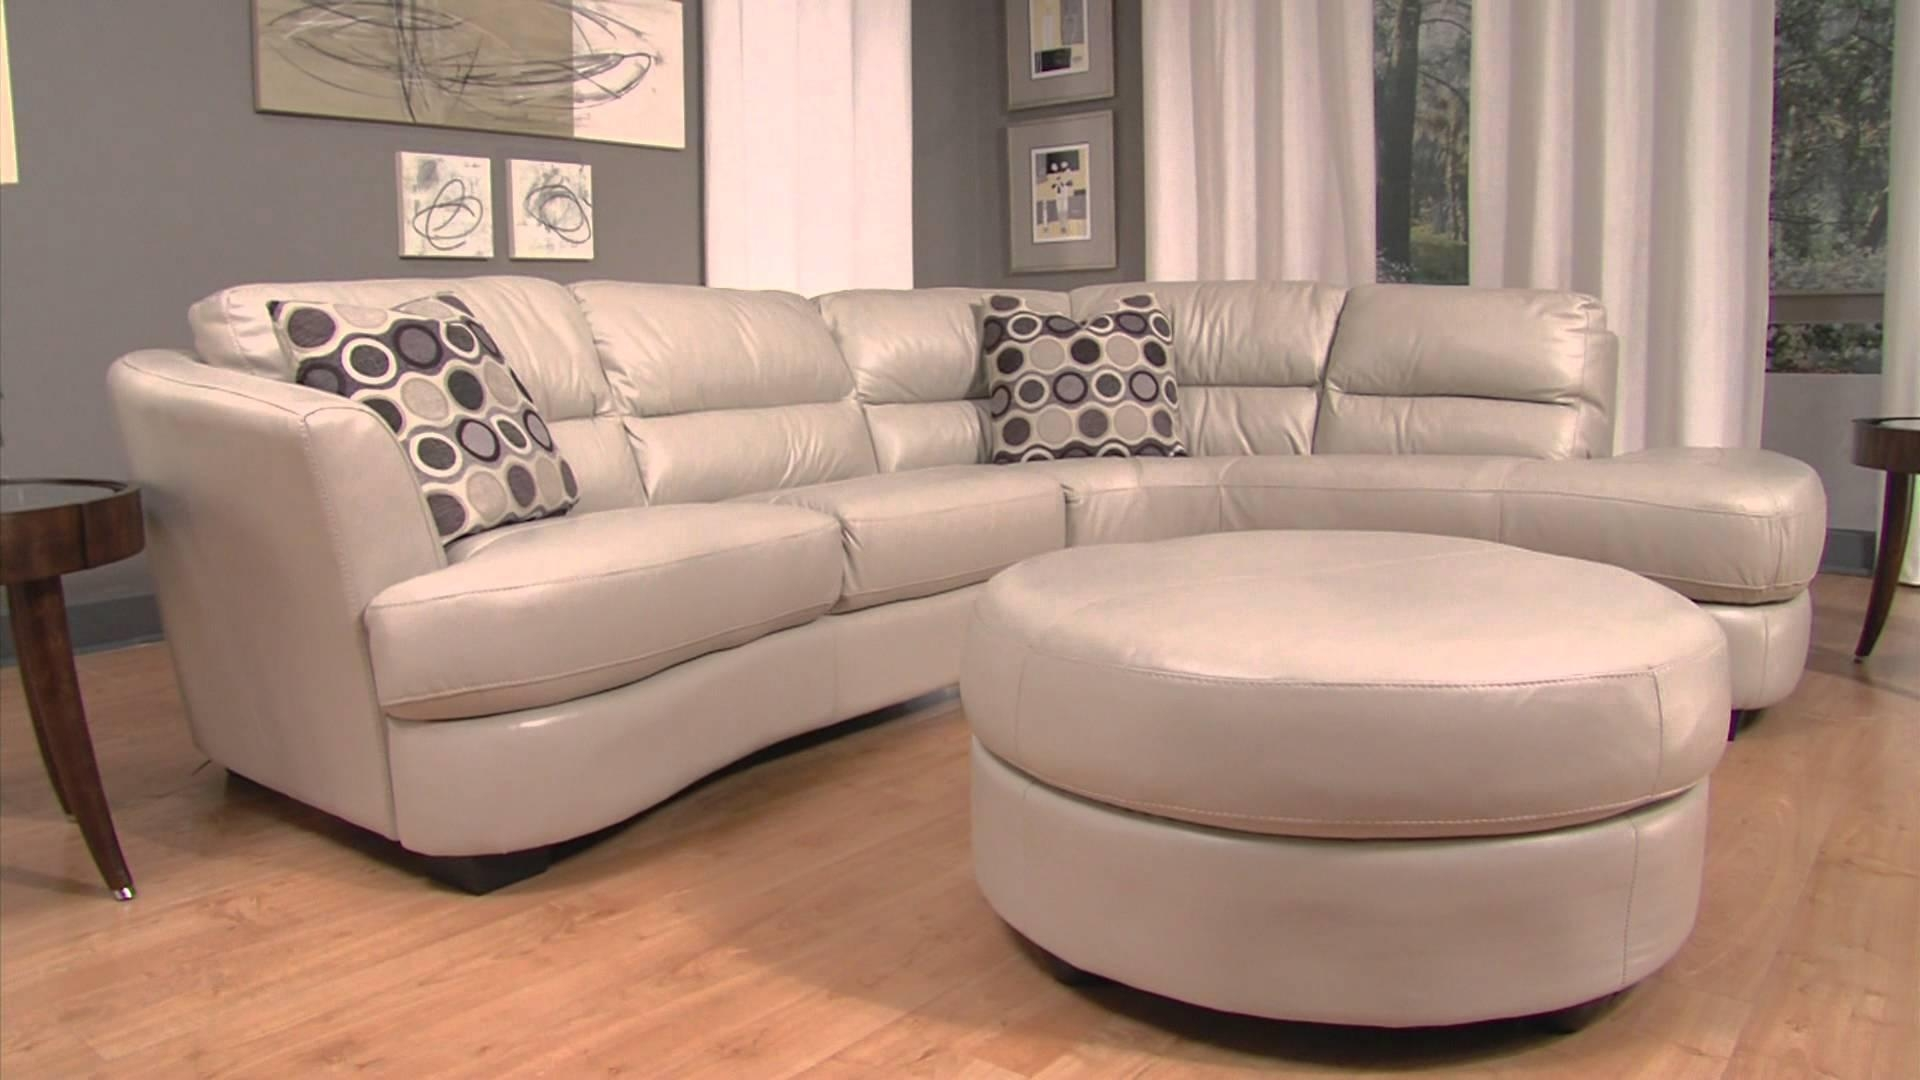 Furniture: Inspiring Living Furniture Ideas With Costco Leather In Costco Leather Sectional Sofas (View 12 of 20)